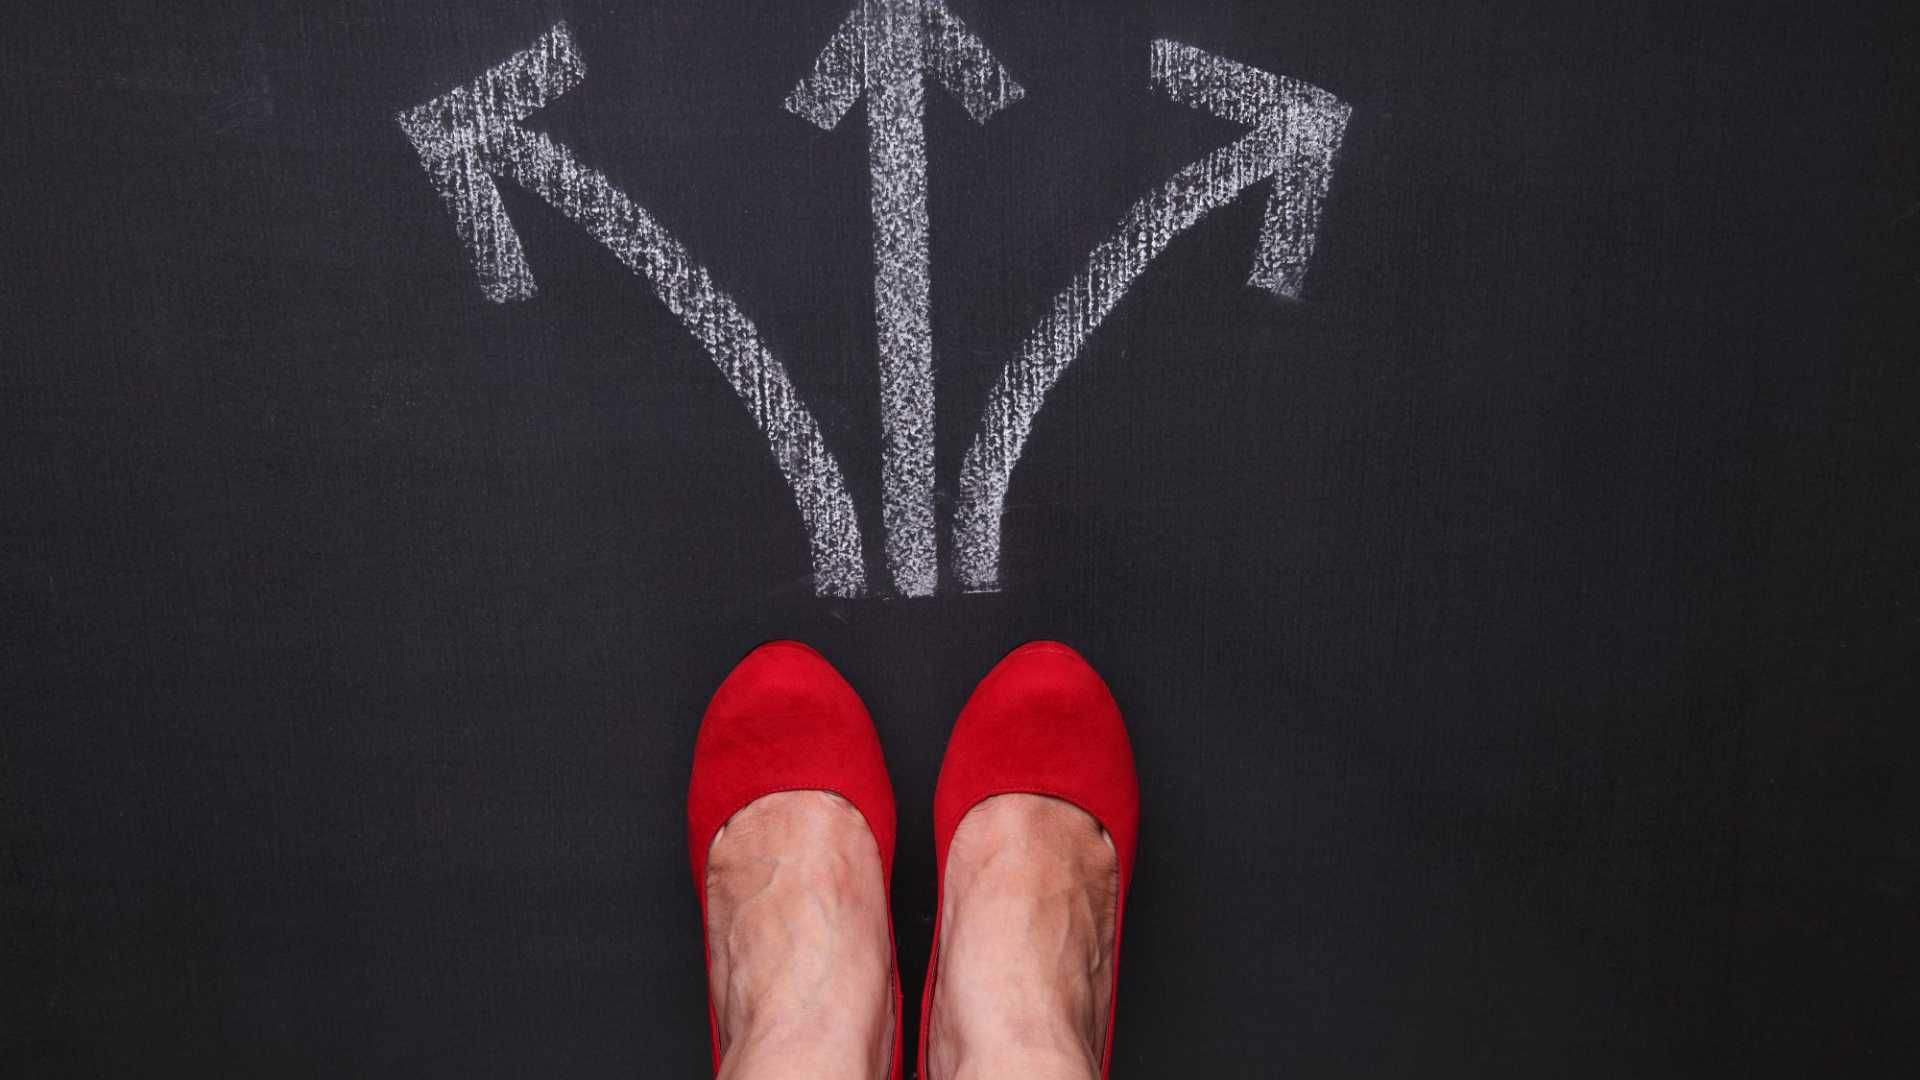 How to Make Good Decisions By Using 3 Simple, Powerful Questions